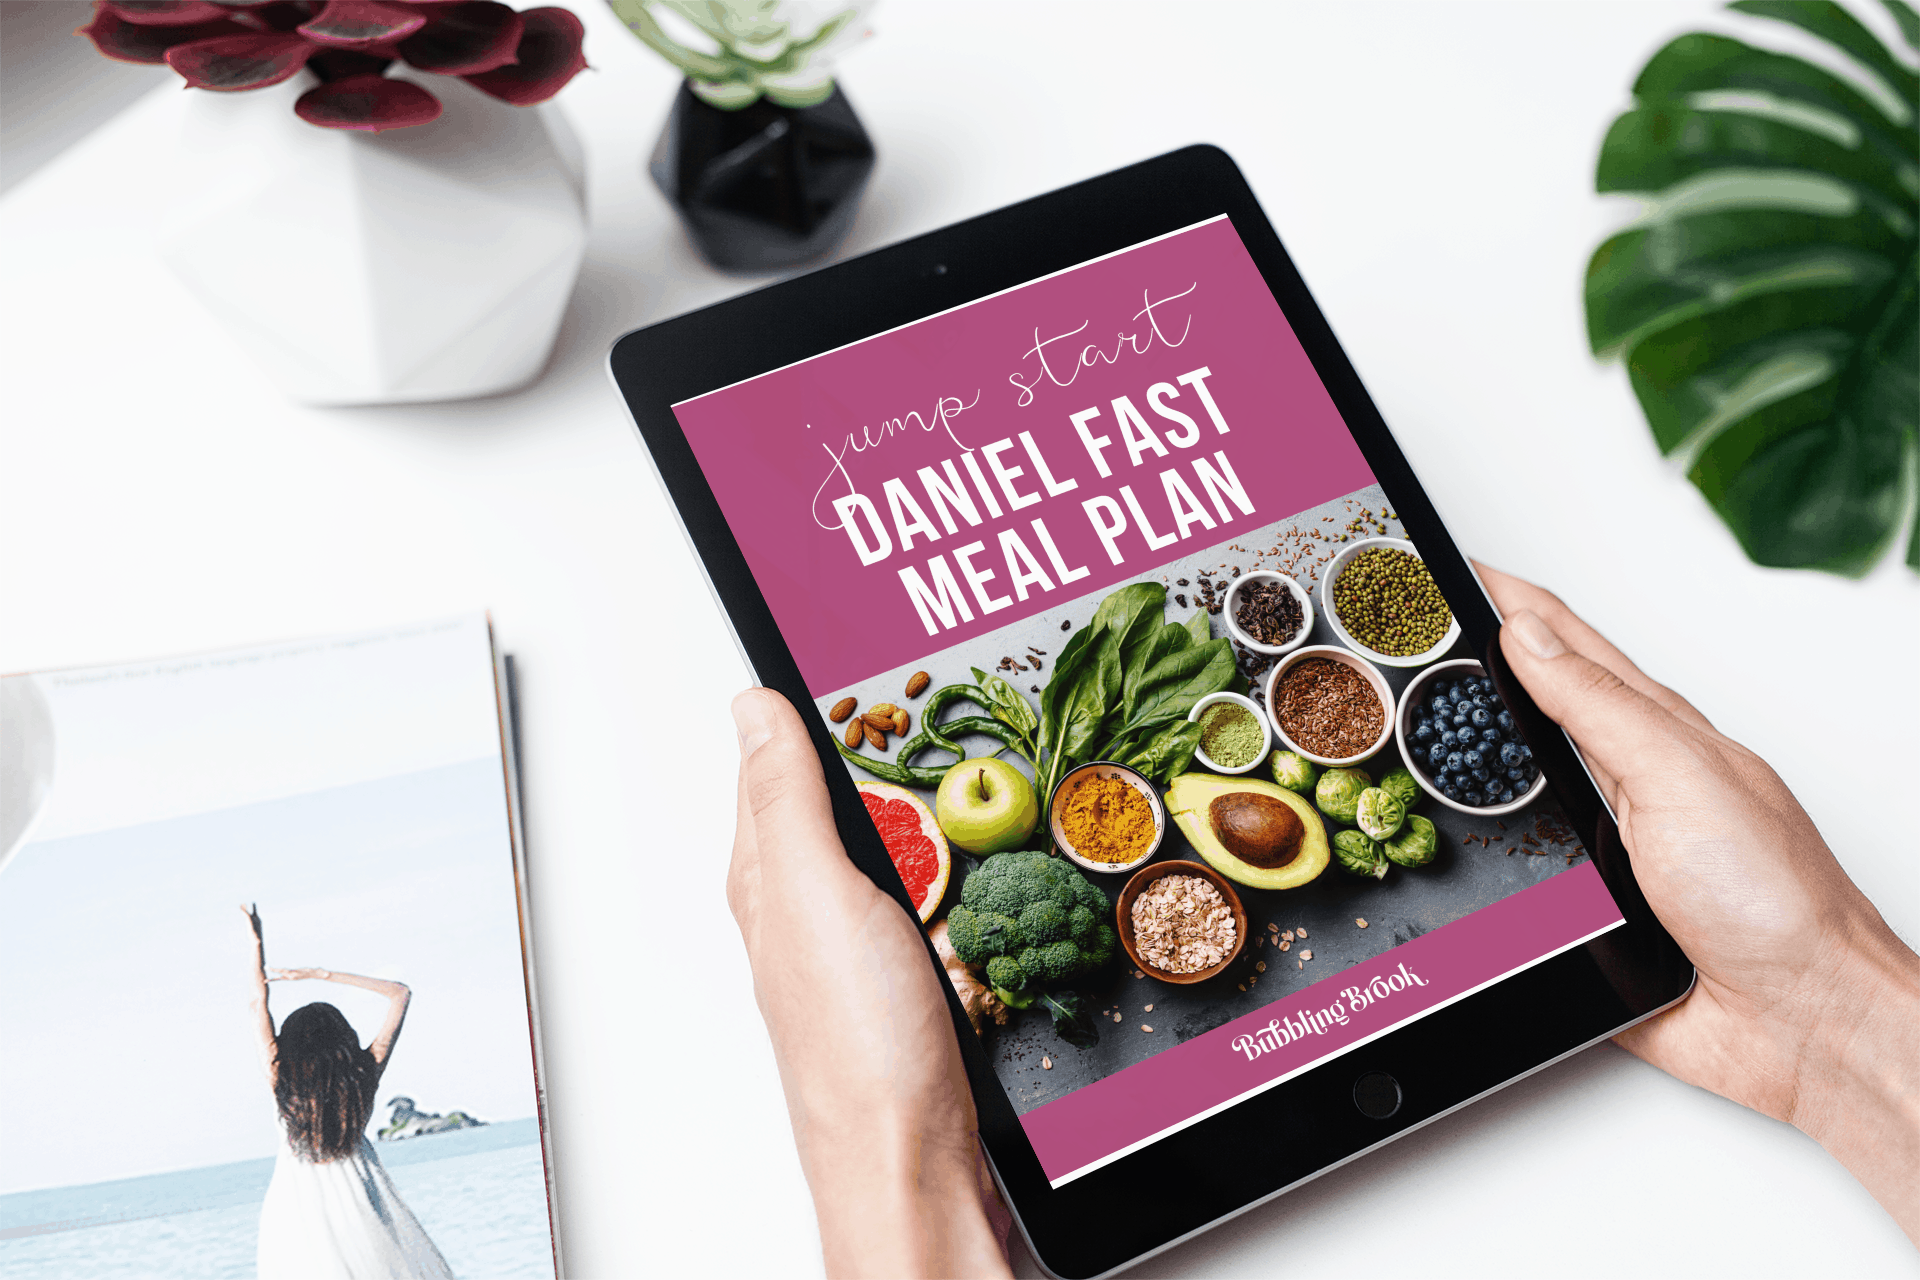 Jump Start Daniel Fast Meal Plan